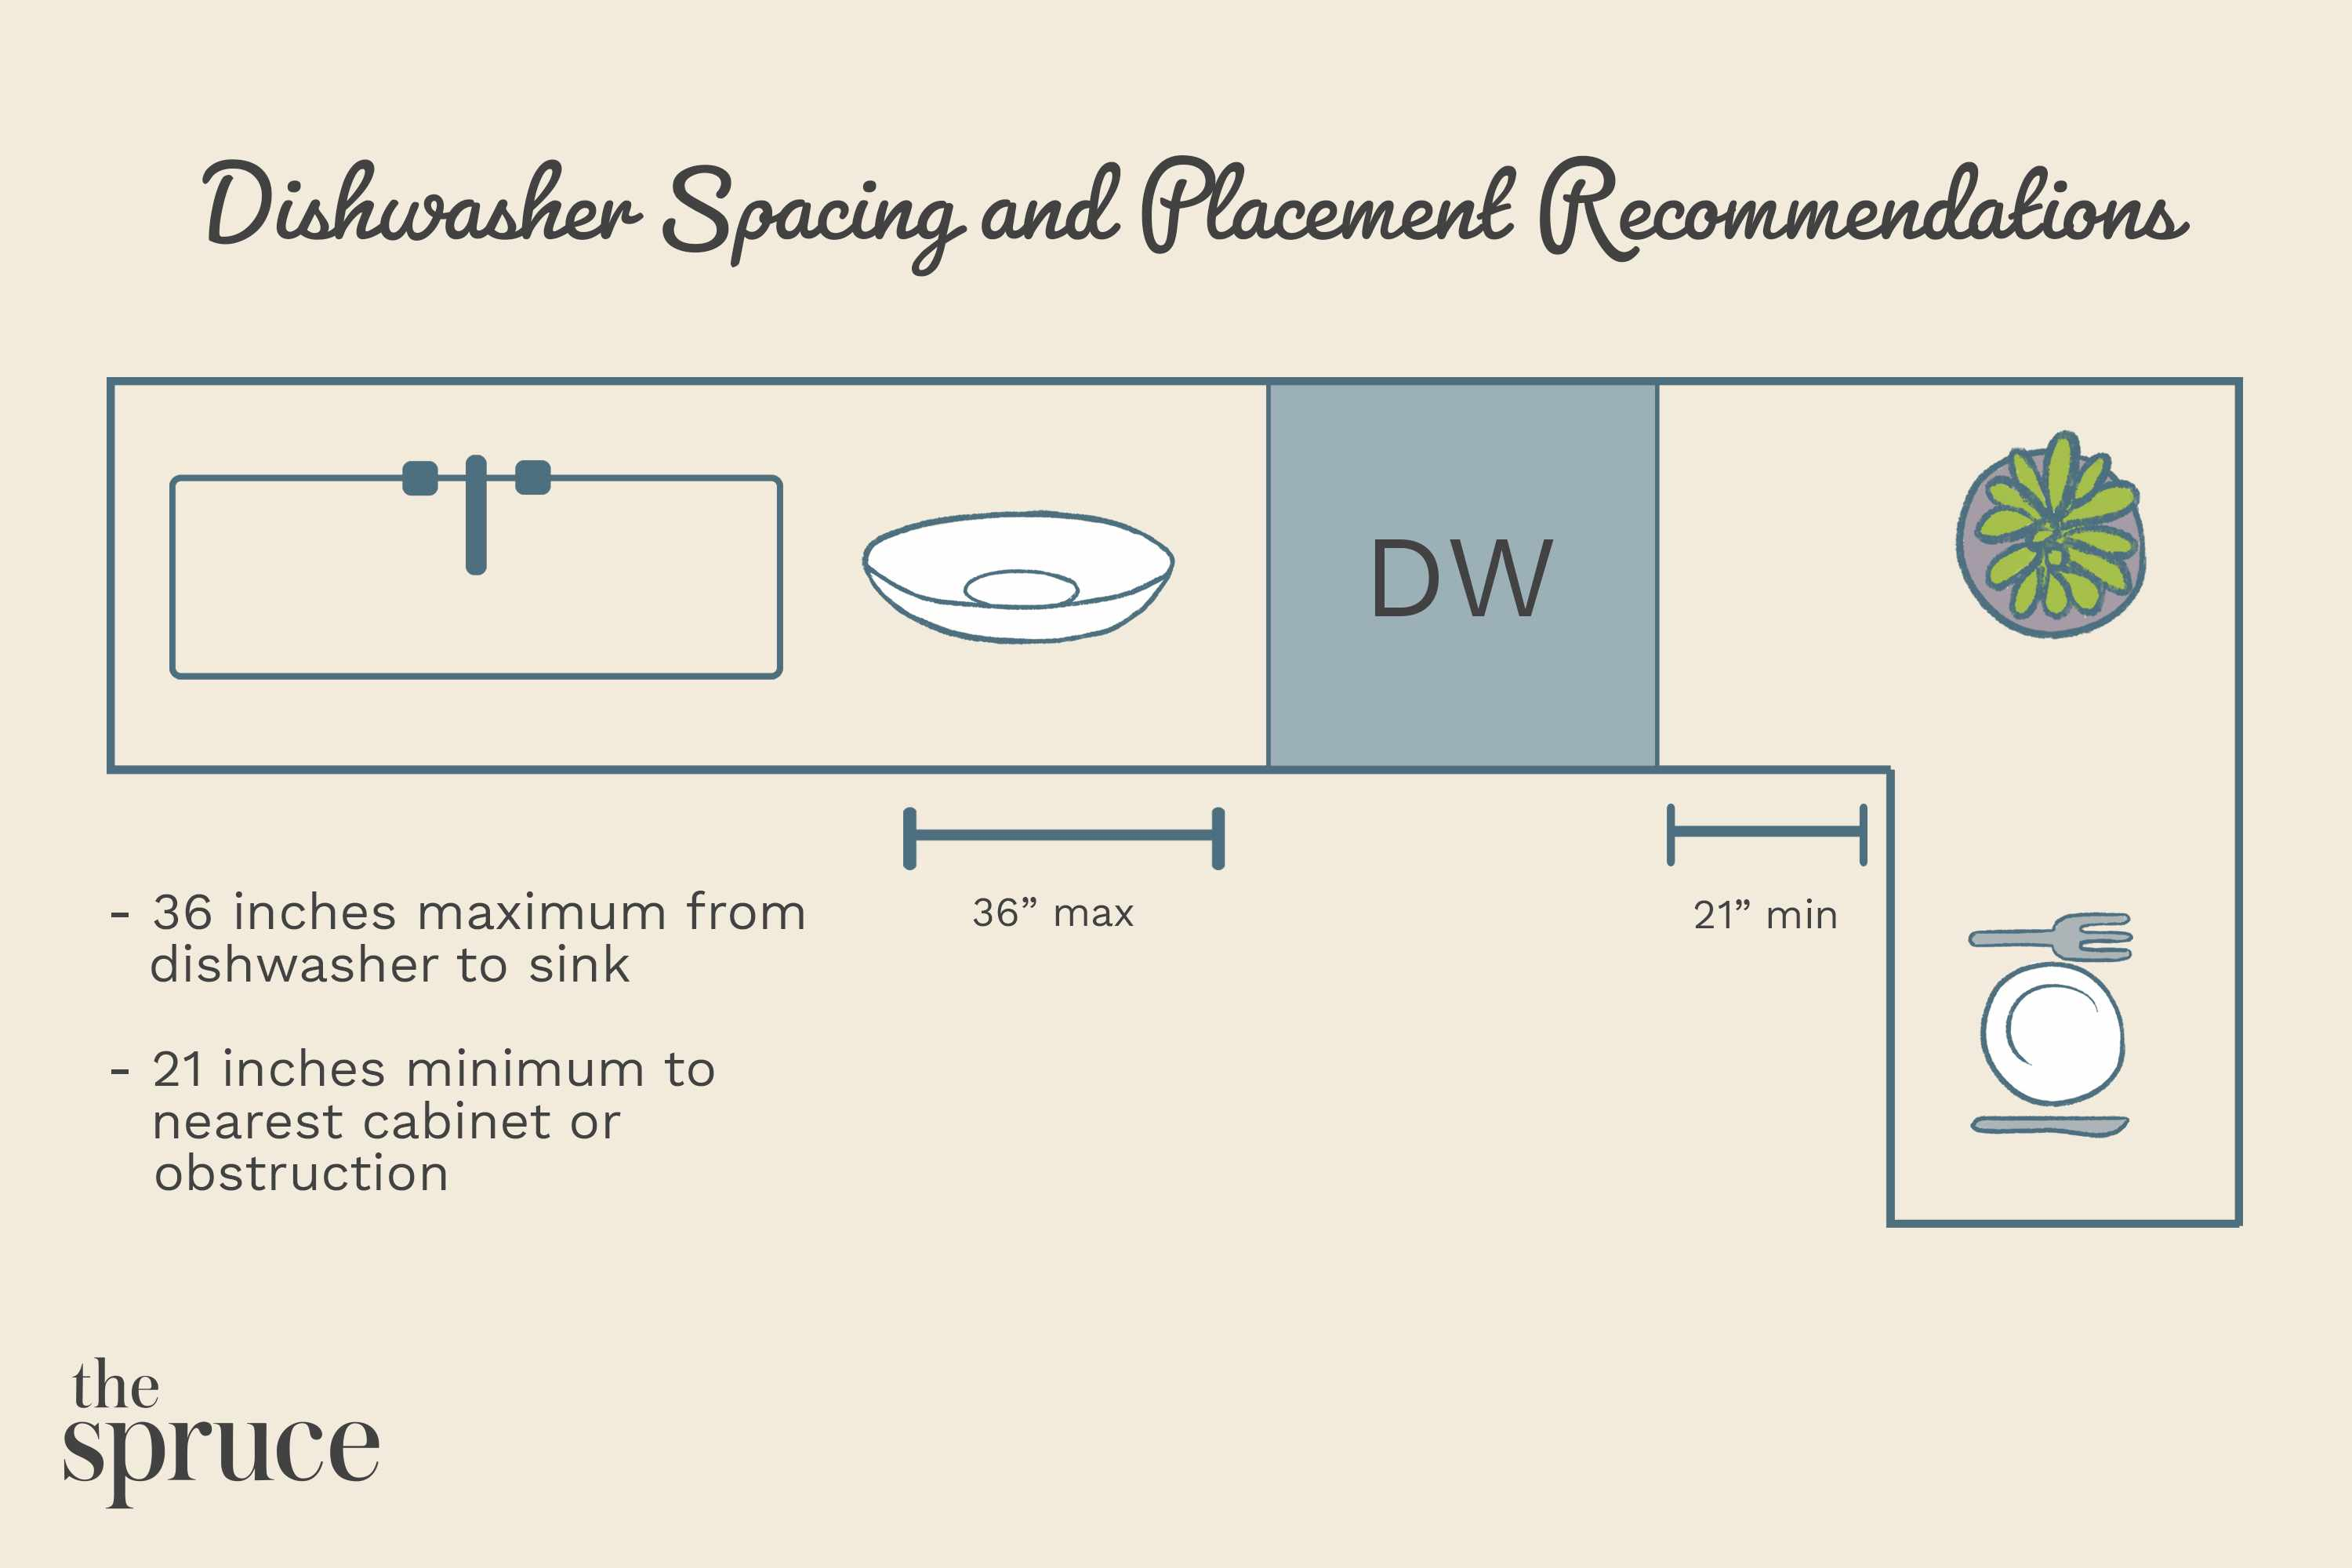 Dishwasher Spacing and Placement Recommendations